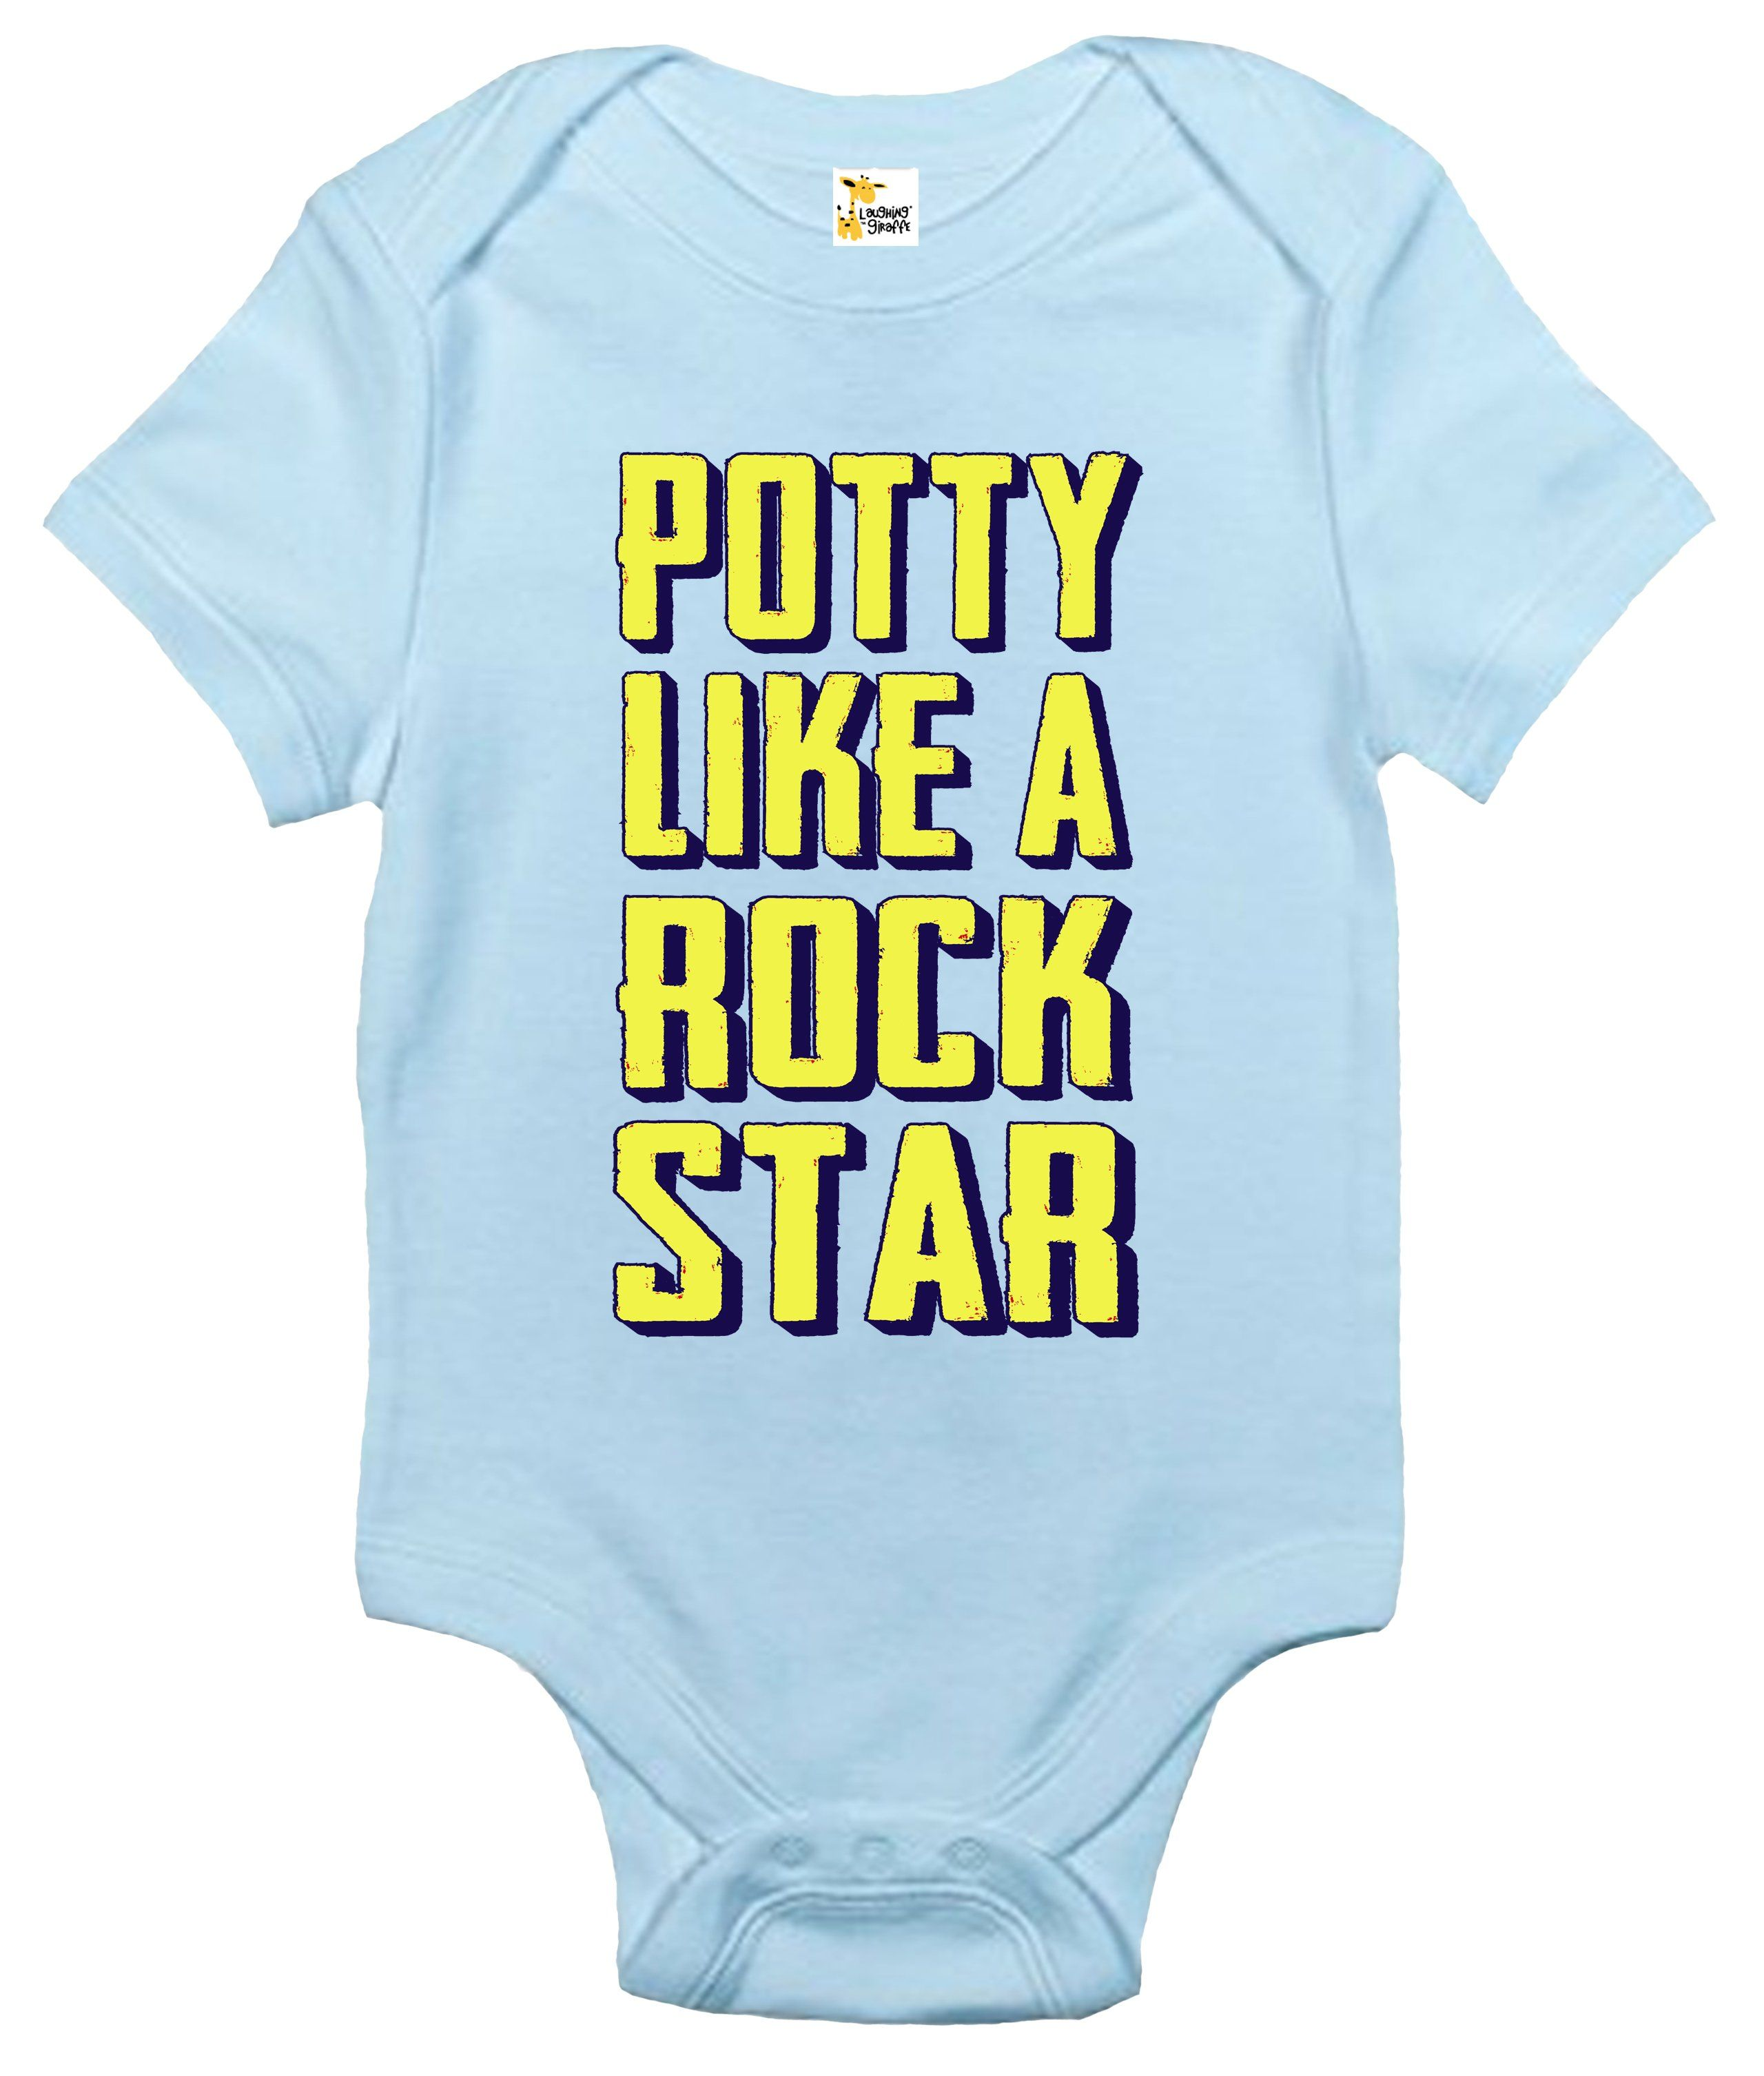 Baby Bodysuit Potty Like a Rock Star